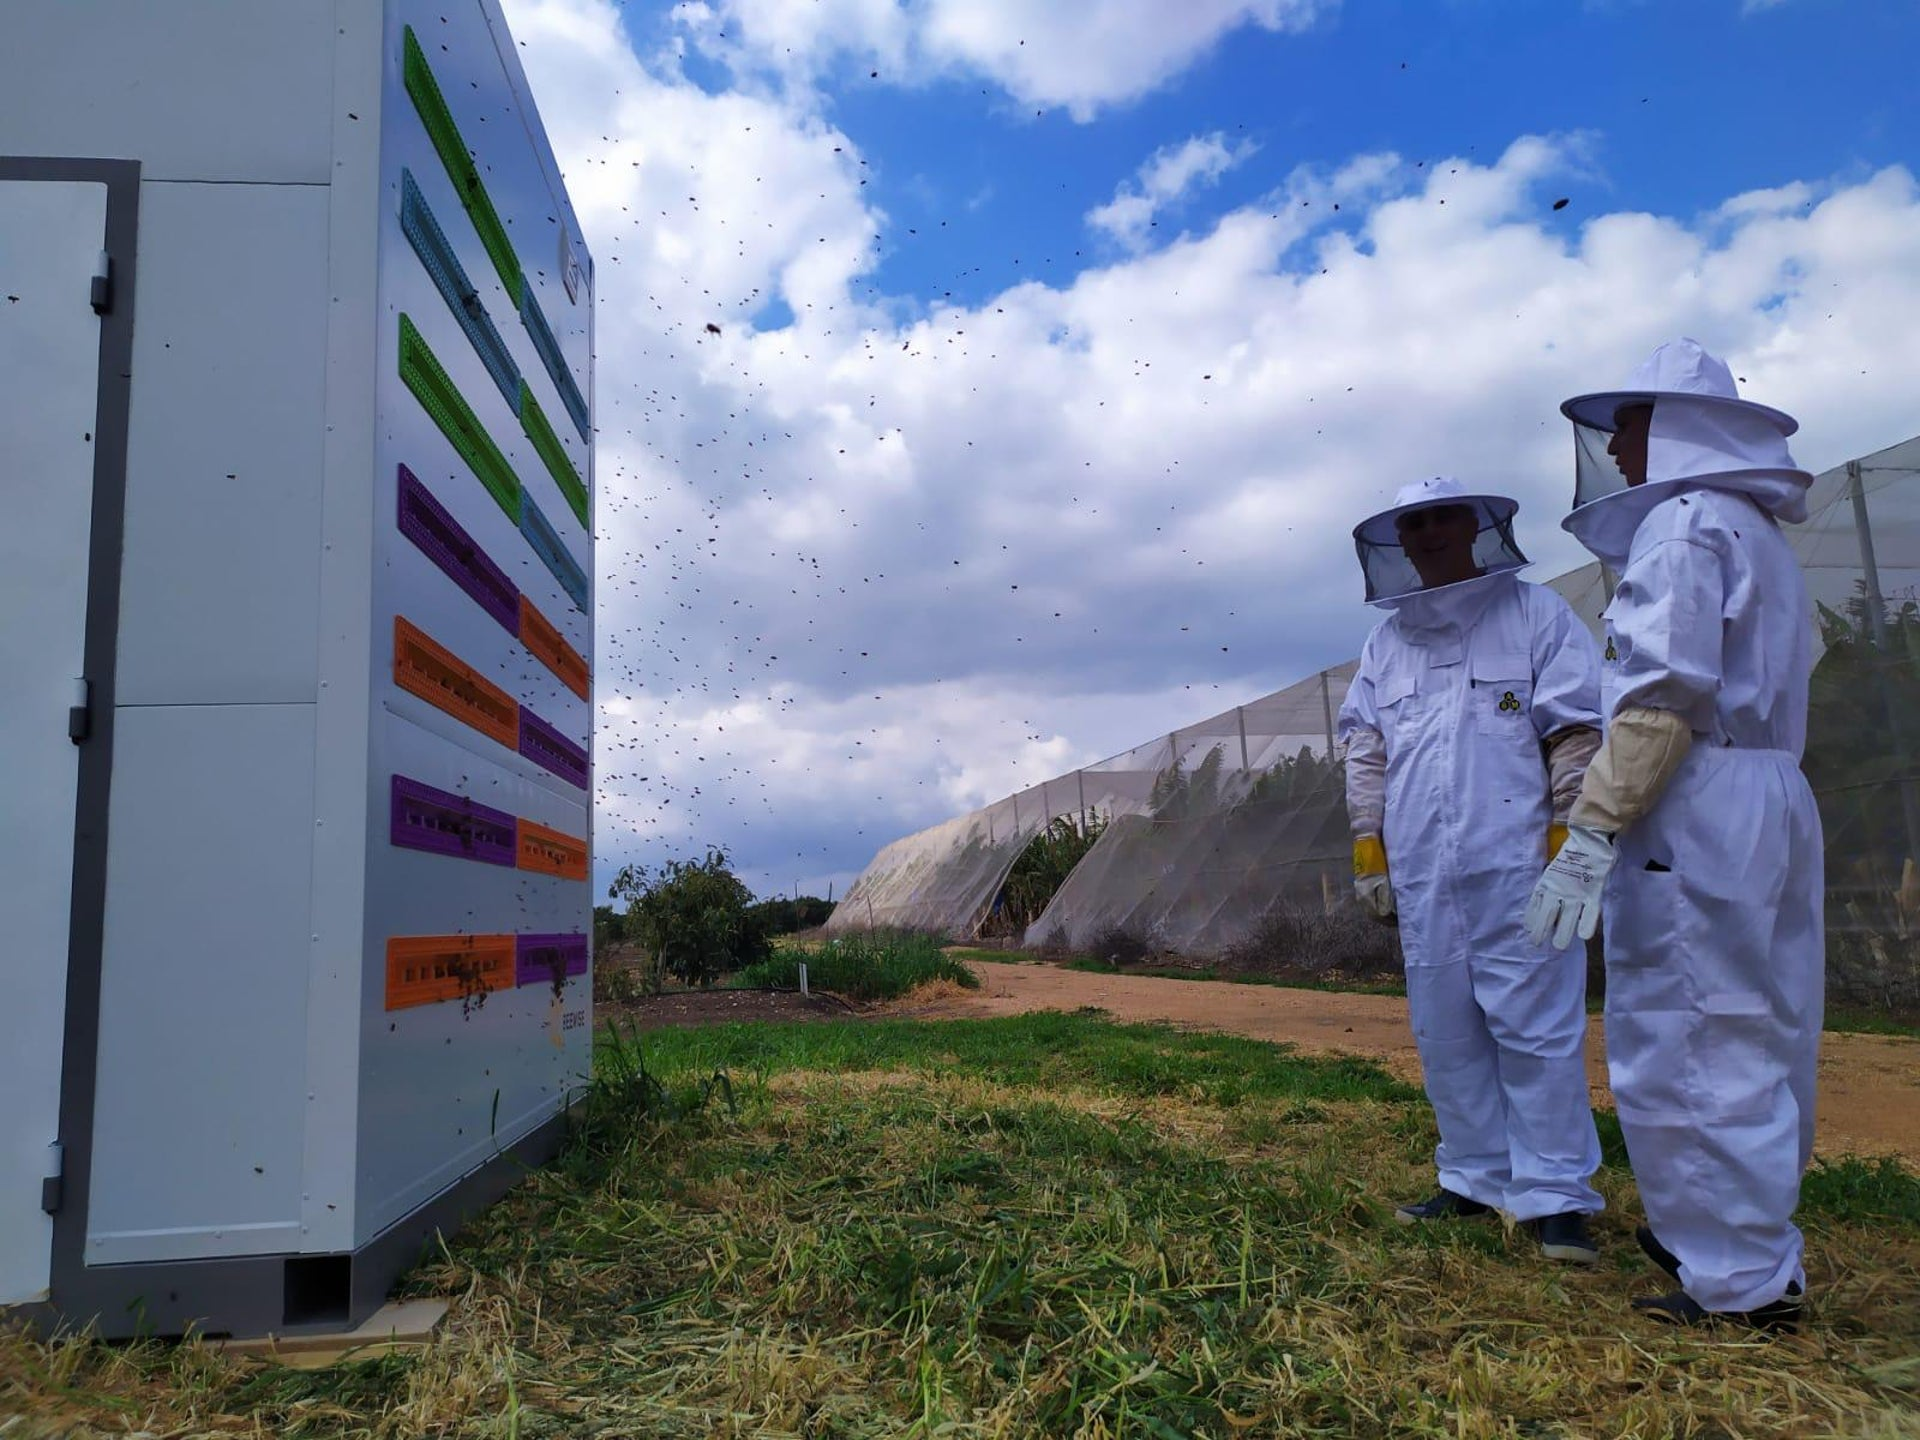 BeeWise's hives are already being used in Israel, for example on this avocado farm in northern Israel where they will remain until the end of the season to help pollination